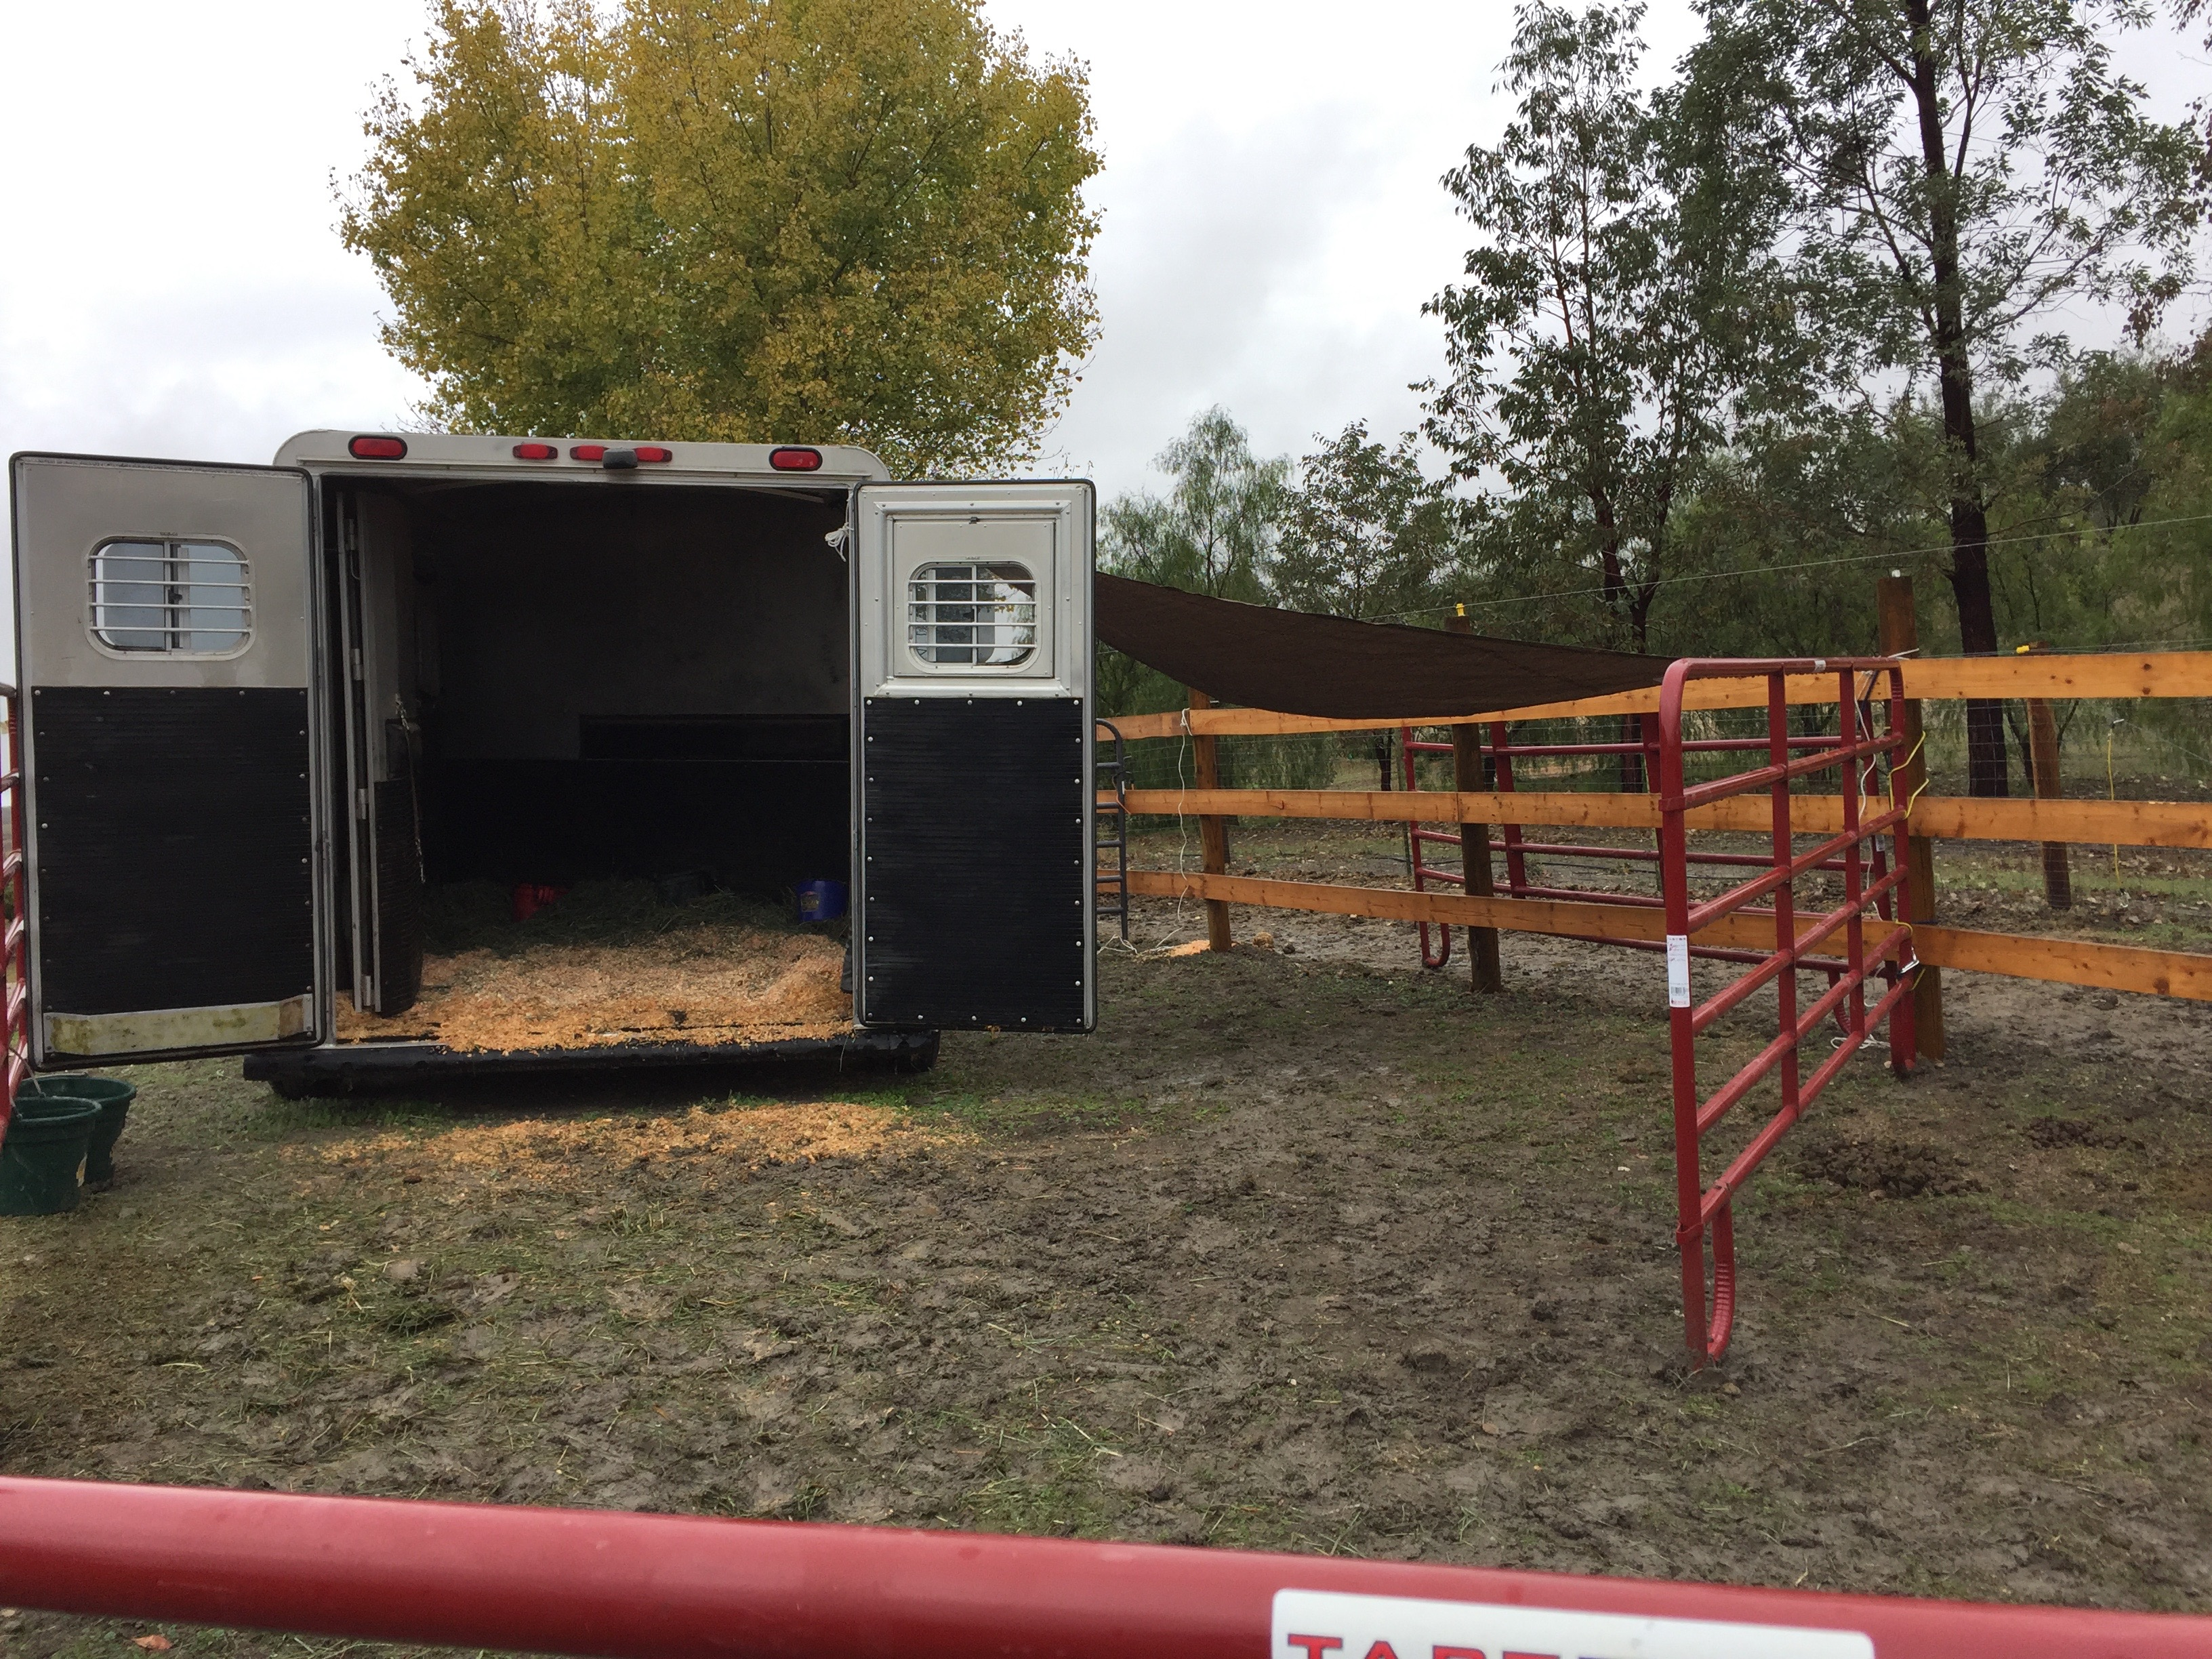 I then put another set of panels to force him inside during heavy rain. He isn't afraid of the trailer, he just likes to stand in the rain - he always has. But before, I had a barn. Now, we make due until a barn is built!